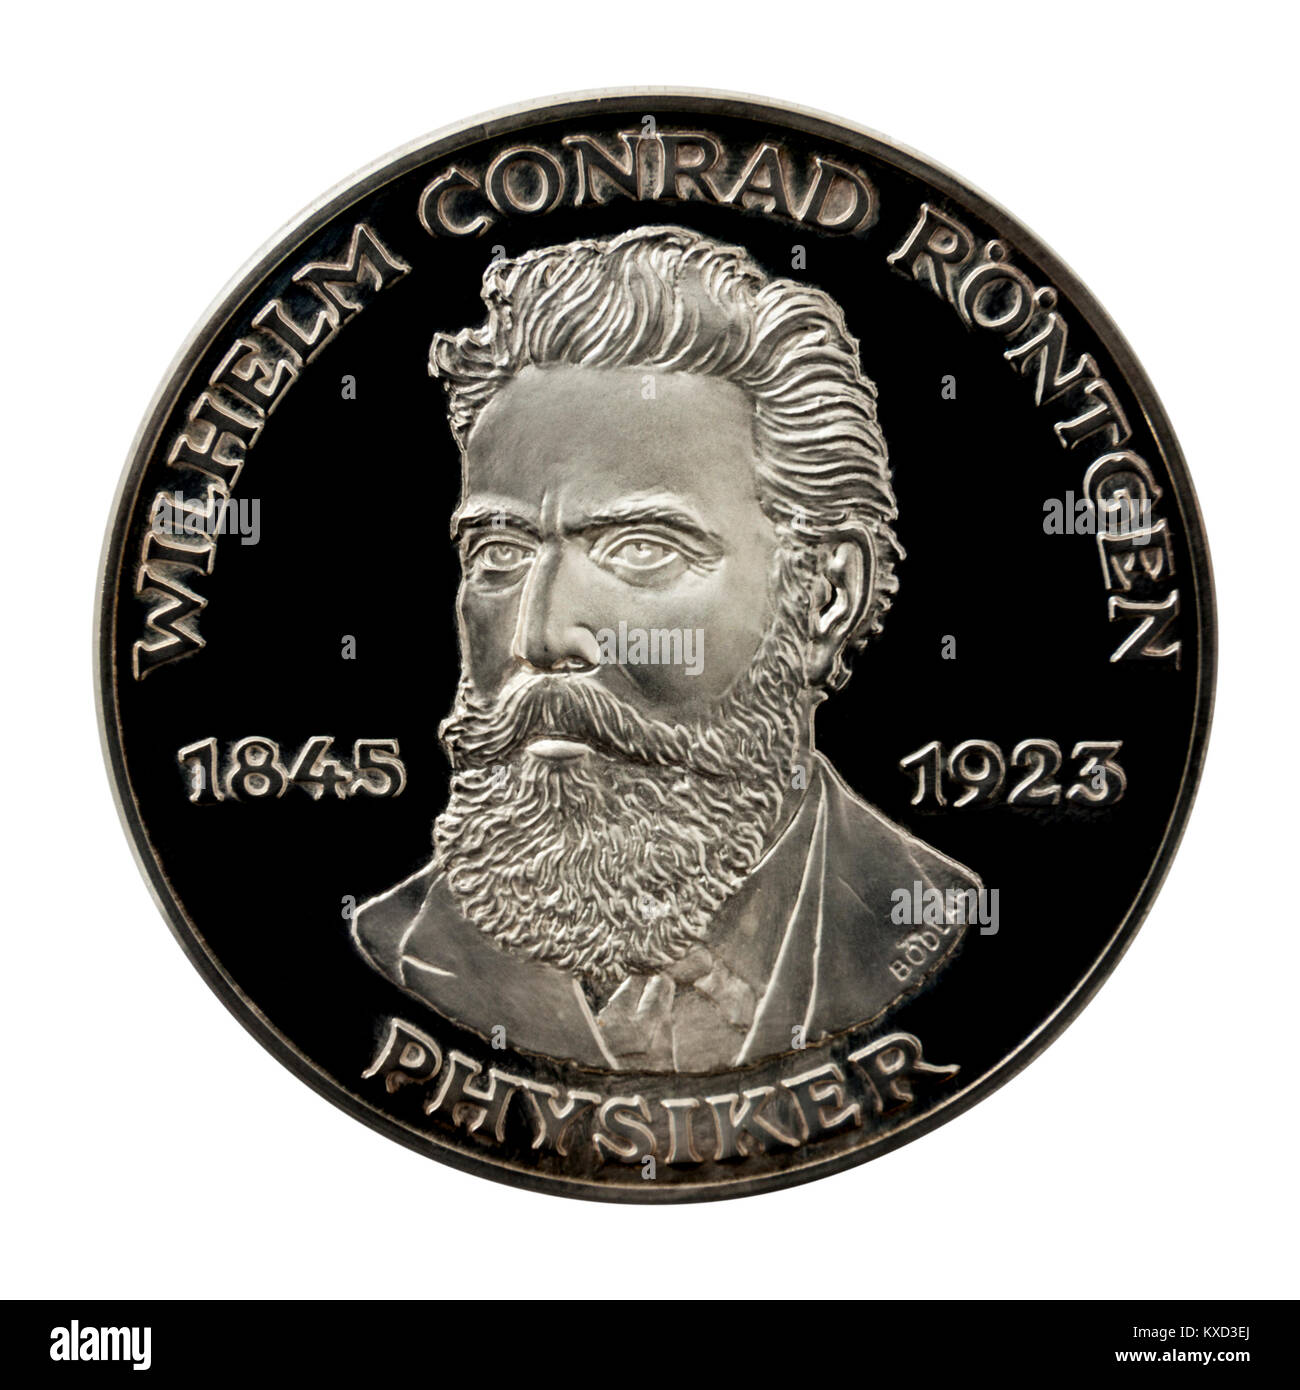 99.9% Proof Silver Medallion featuring Wilhelm Conrad Röntgen, the famous German inventor of X-rays. - Stock Image